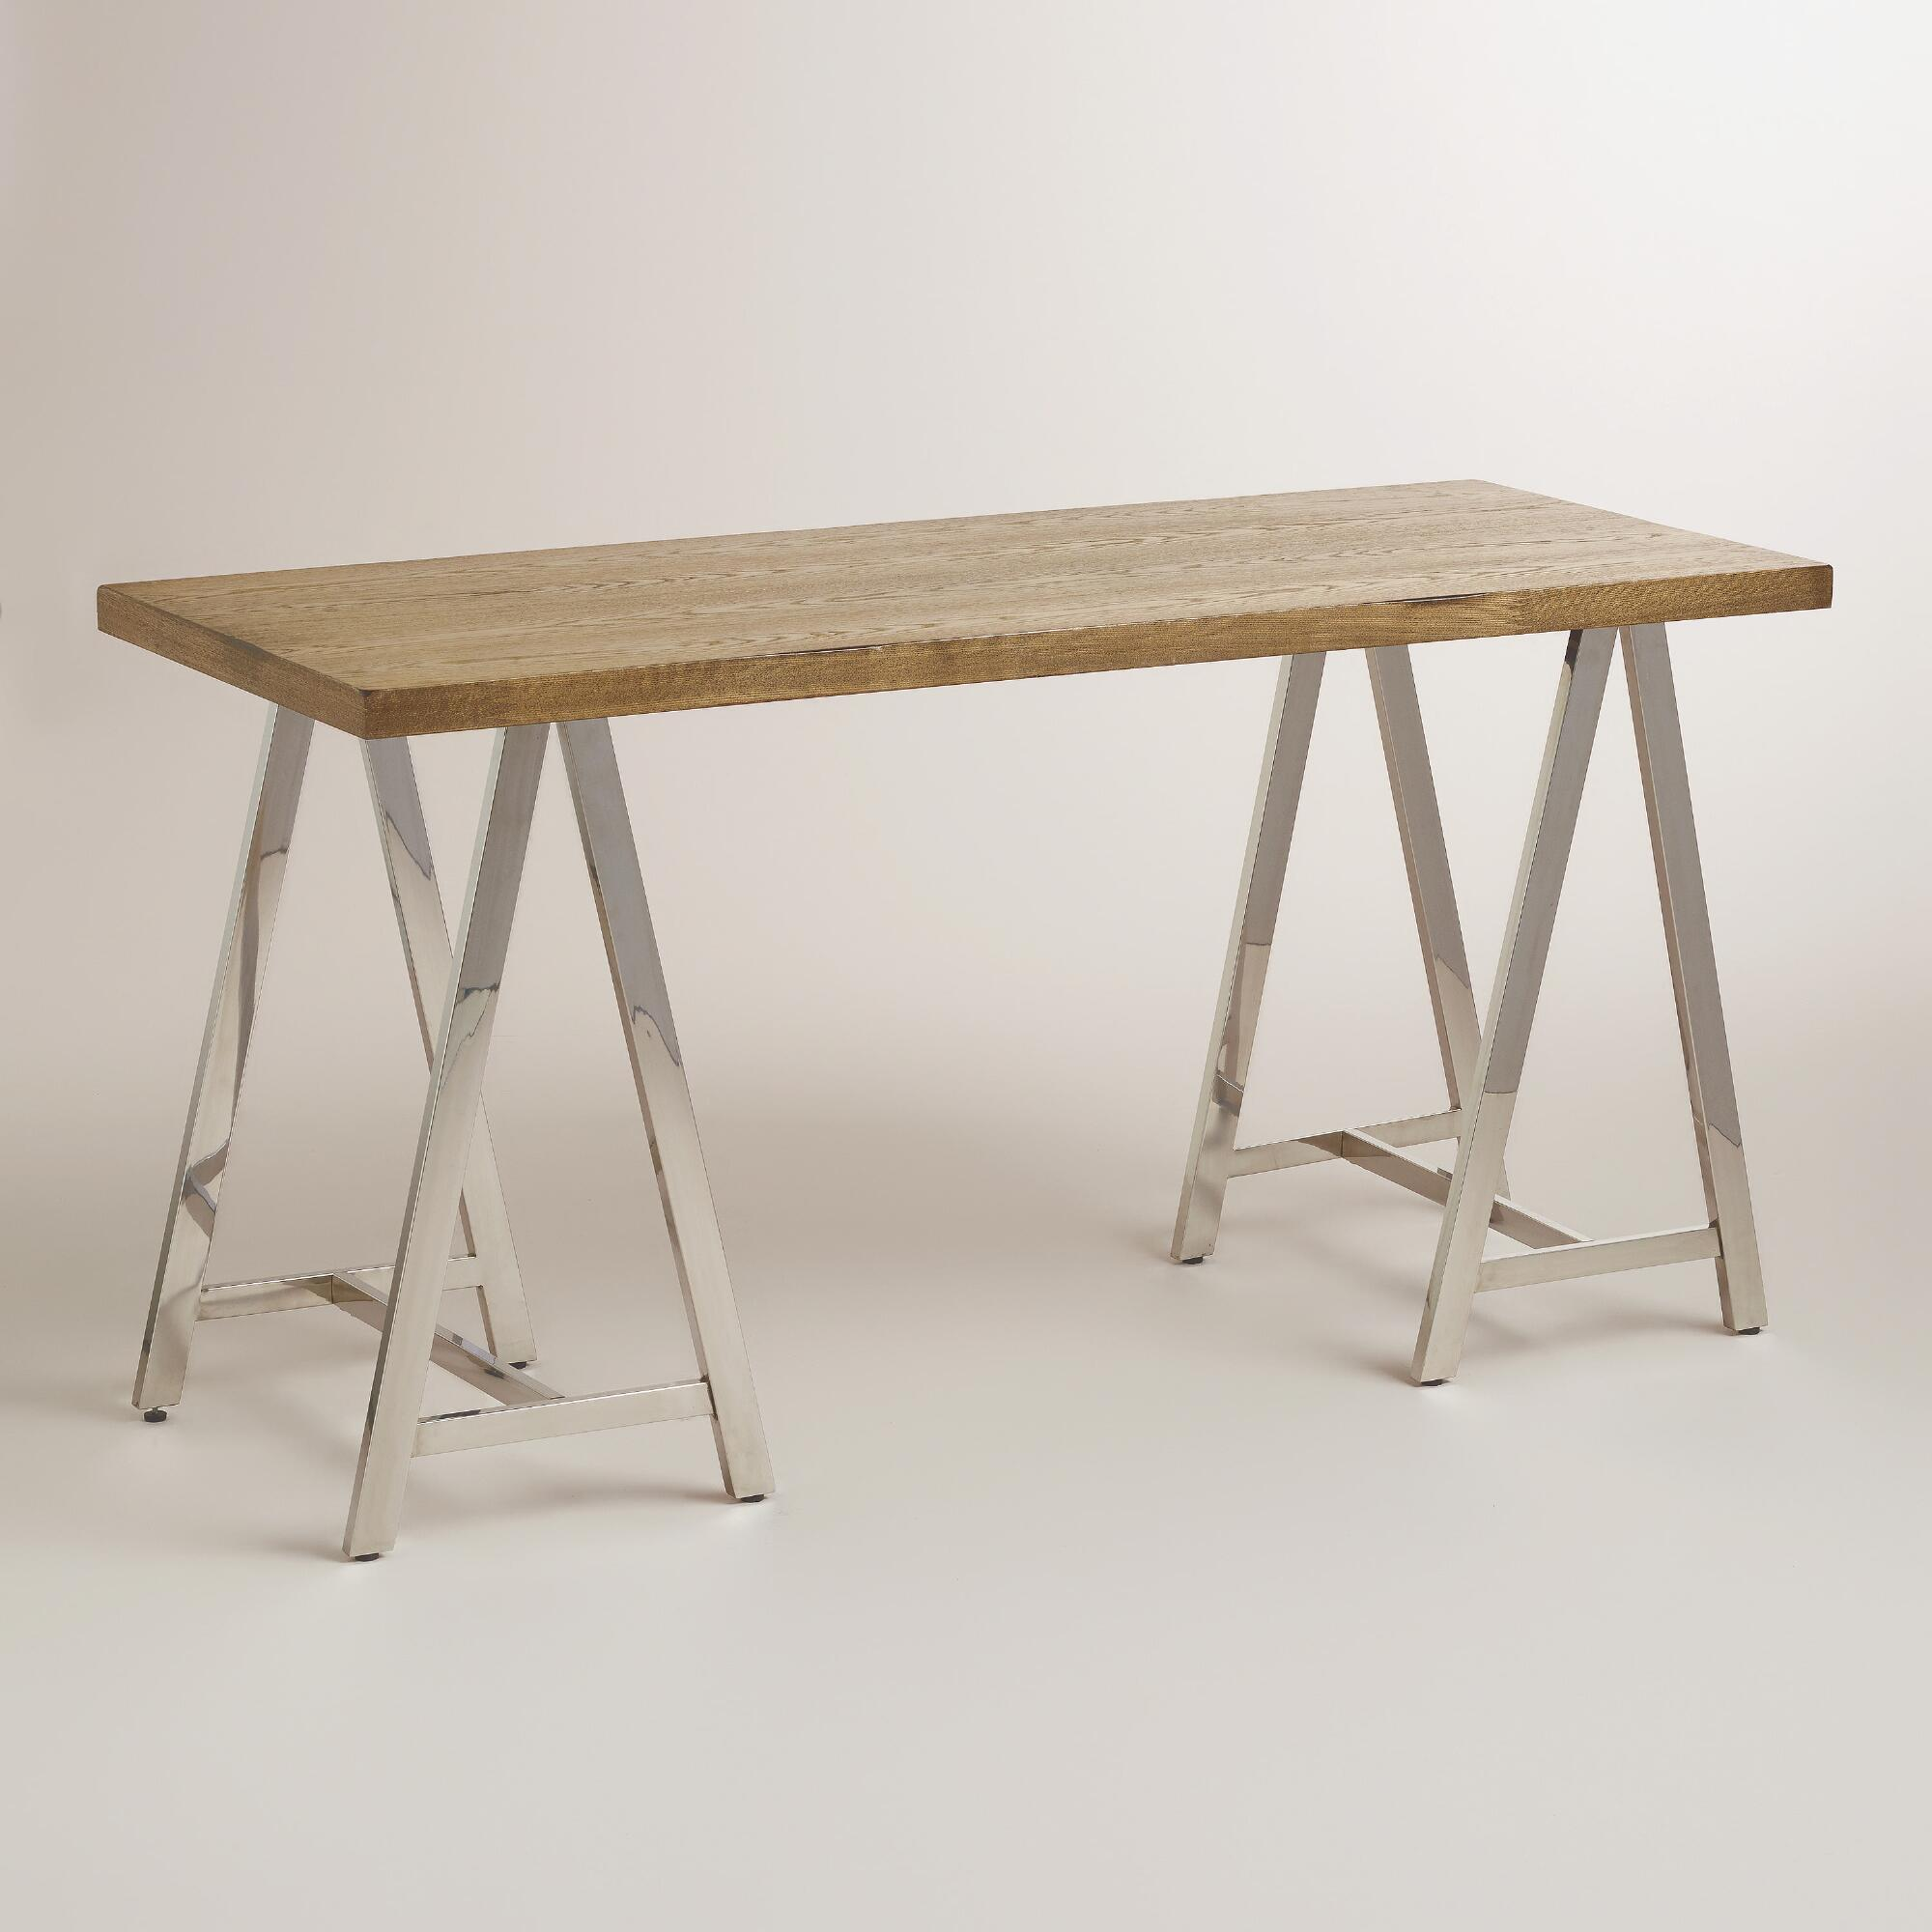 Trestle desk from World Market